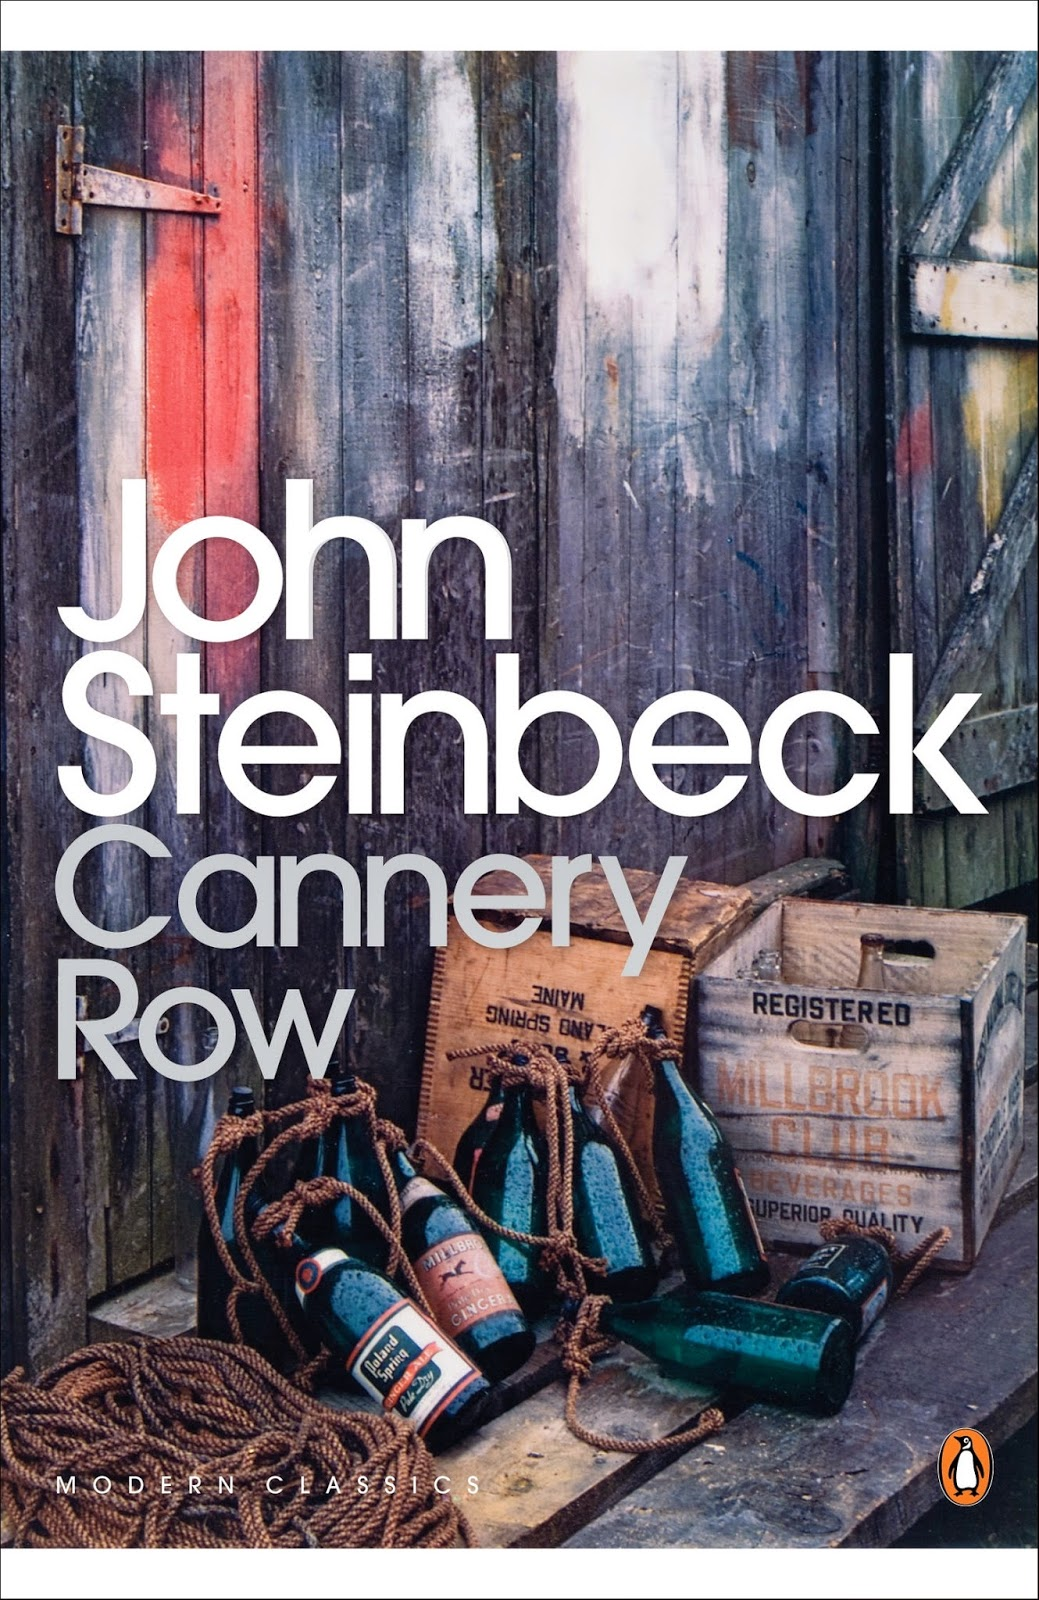 an analysis of the setting in steinbecks cannery row John steinbeck's cannery row shows how people living there dealt with the hardships brought by the great setting 1 cannery row in monterey in california is a poem, a stink, a grating noise, a quality of light, a tone, a habit, a nostalgia, a dream 2 out in the kitchen doc.